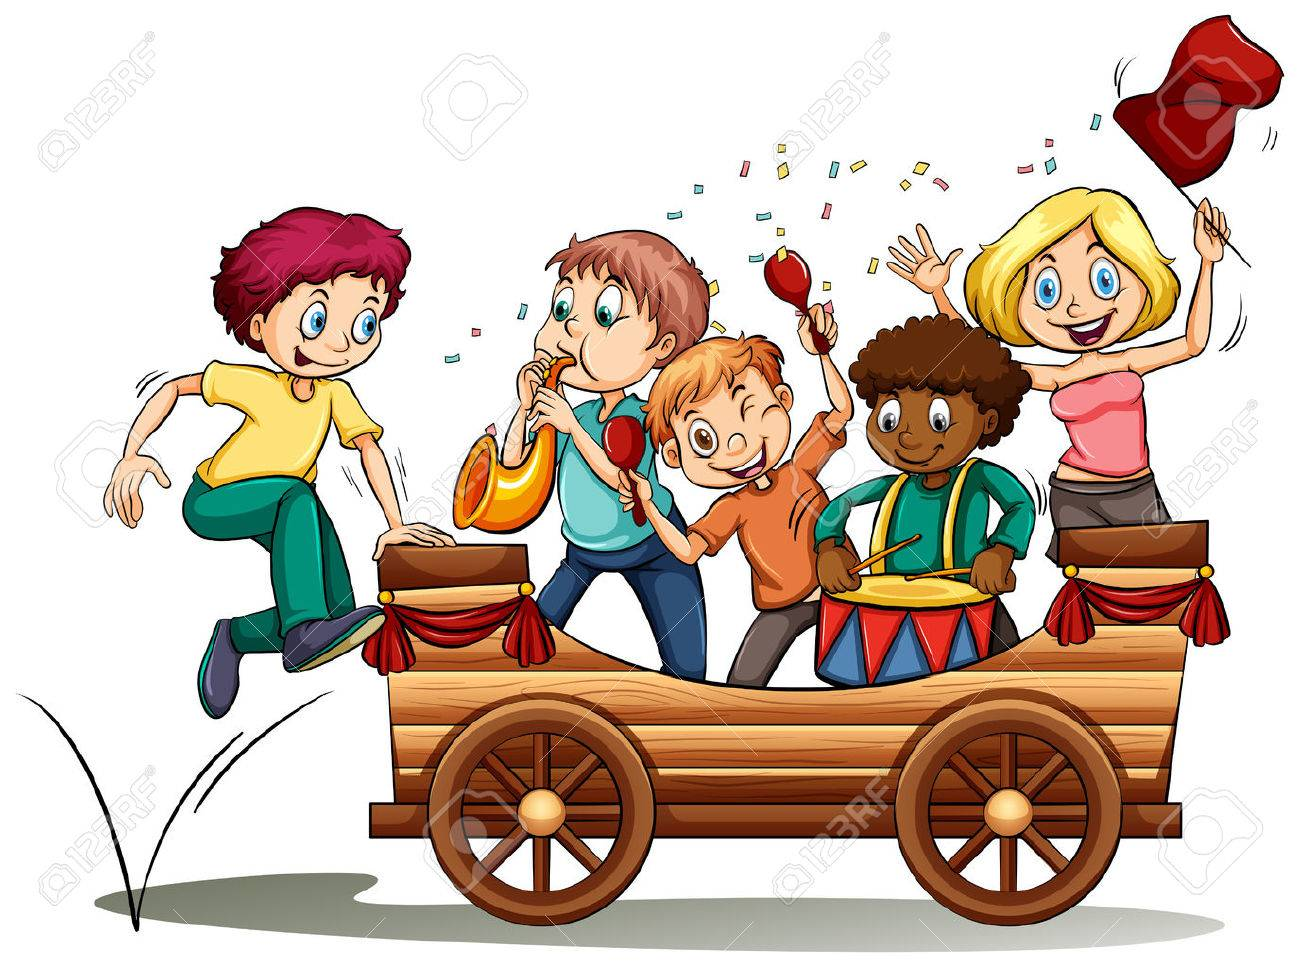 Bandwagon with kids on a white background.